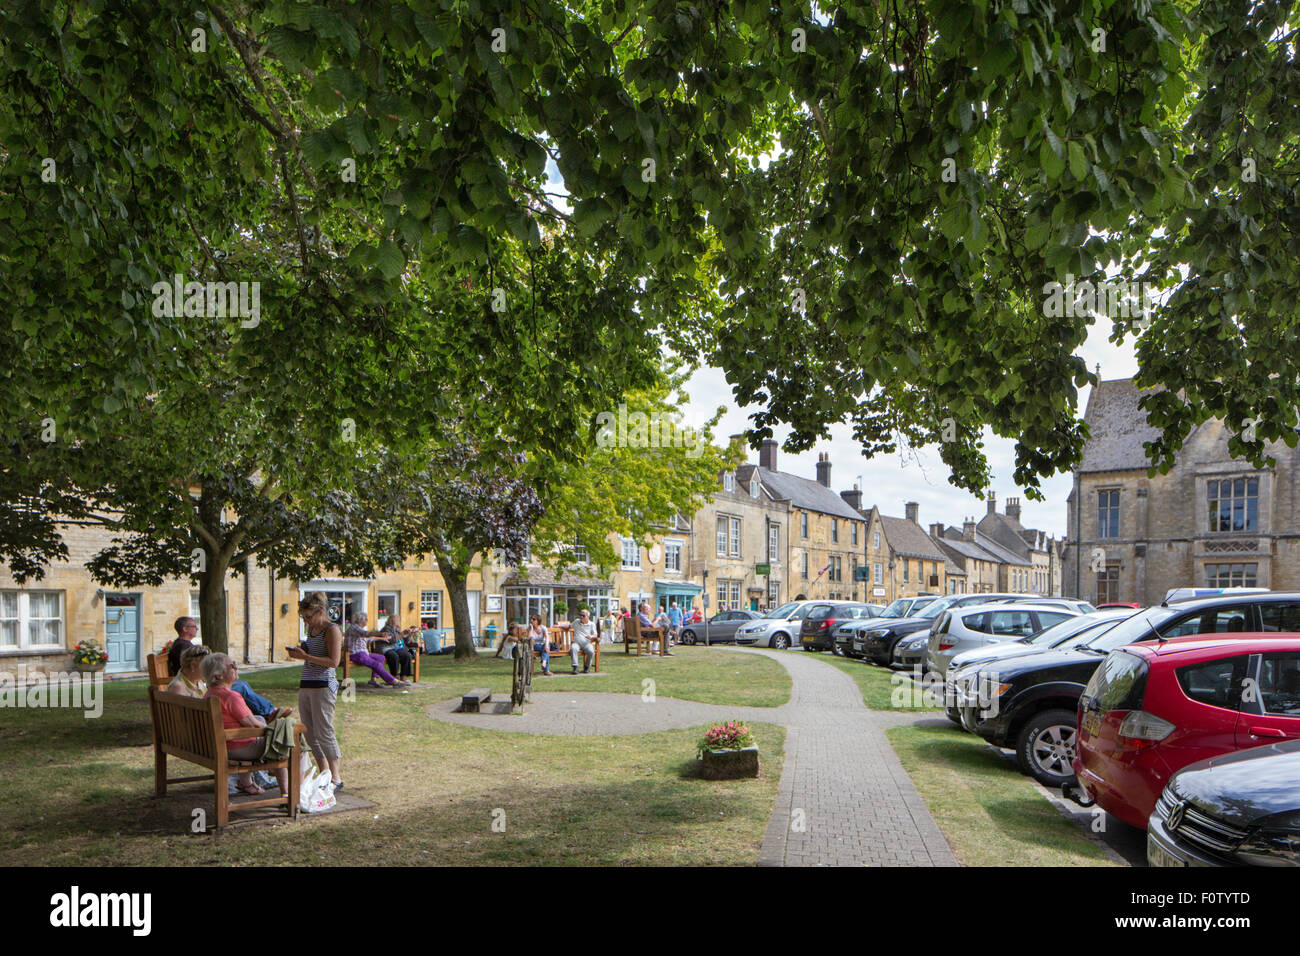 Relaxing in Stow on the Wold, Gloucestershire, England, UK Stock Photo